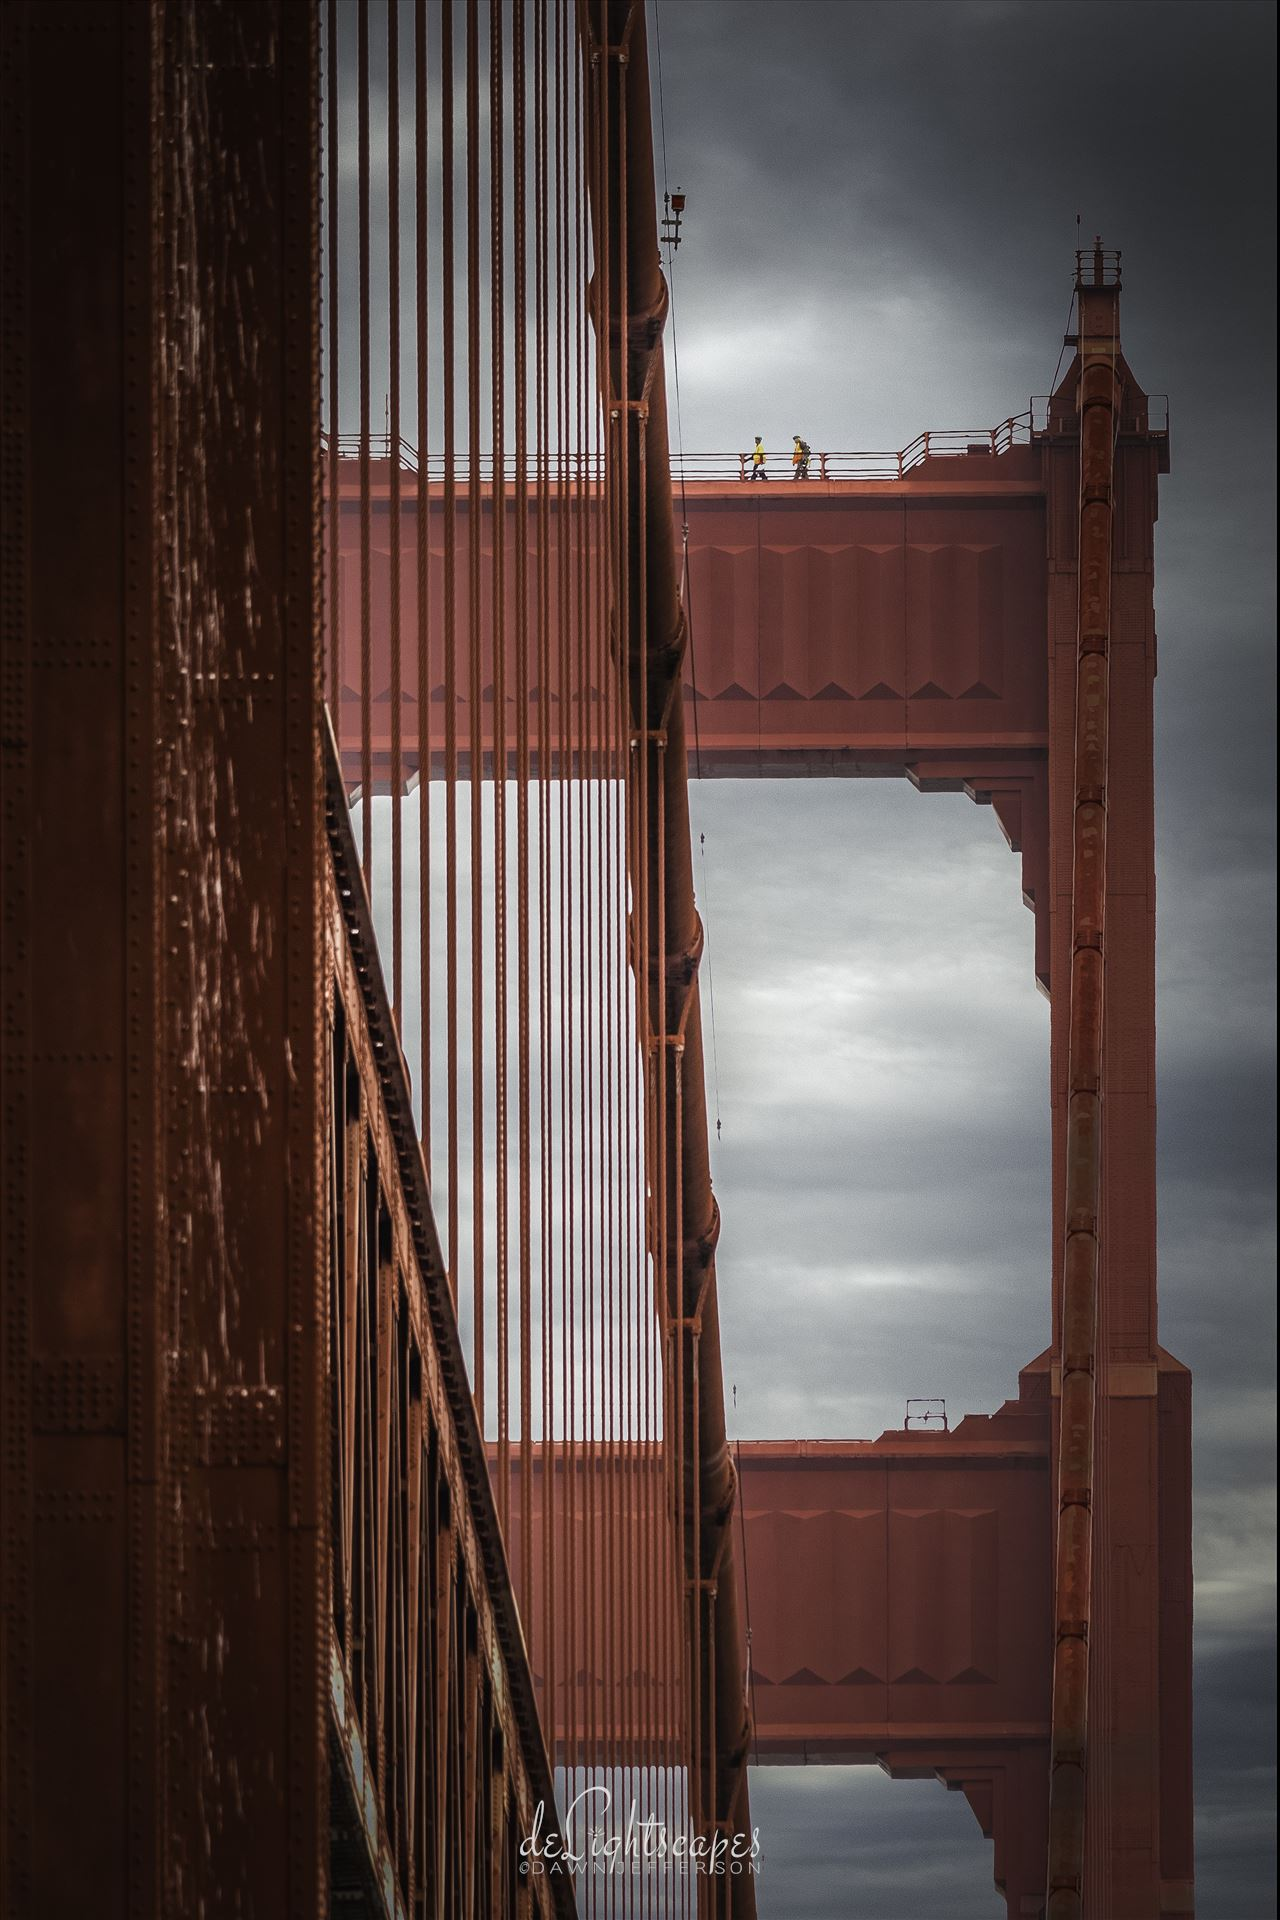 Hard Day's Work - Two workers on top of the Golden Gate Bridge by Dawn Jefferson